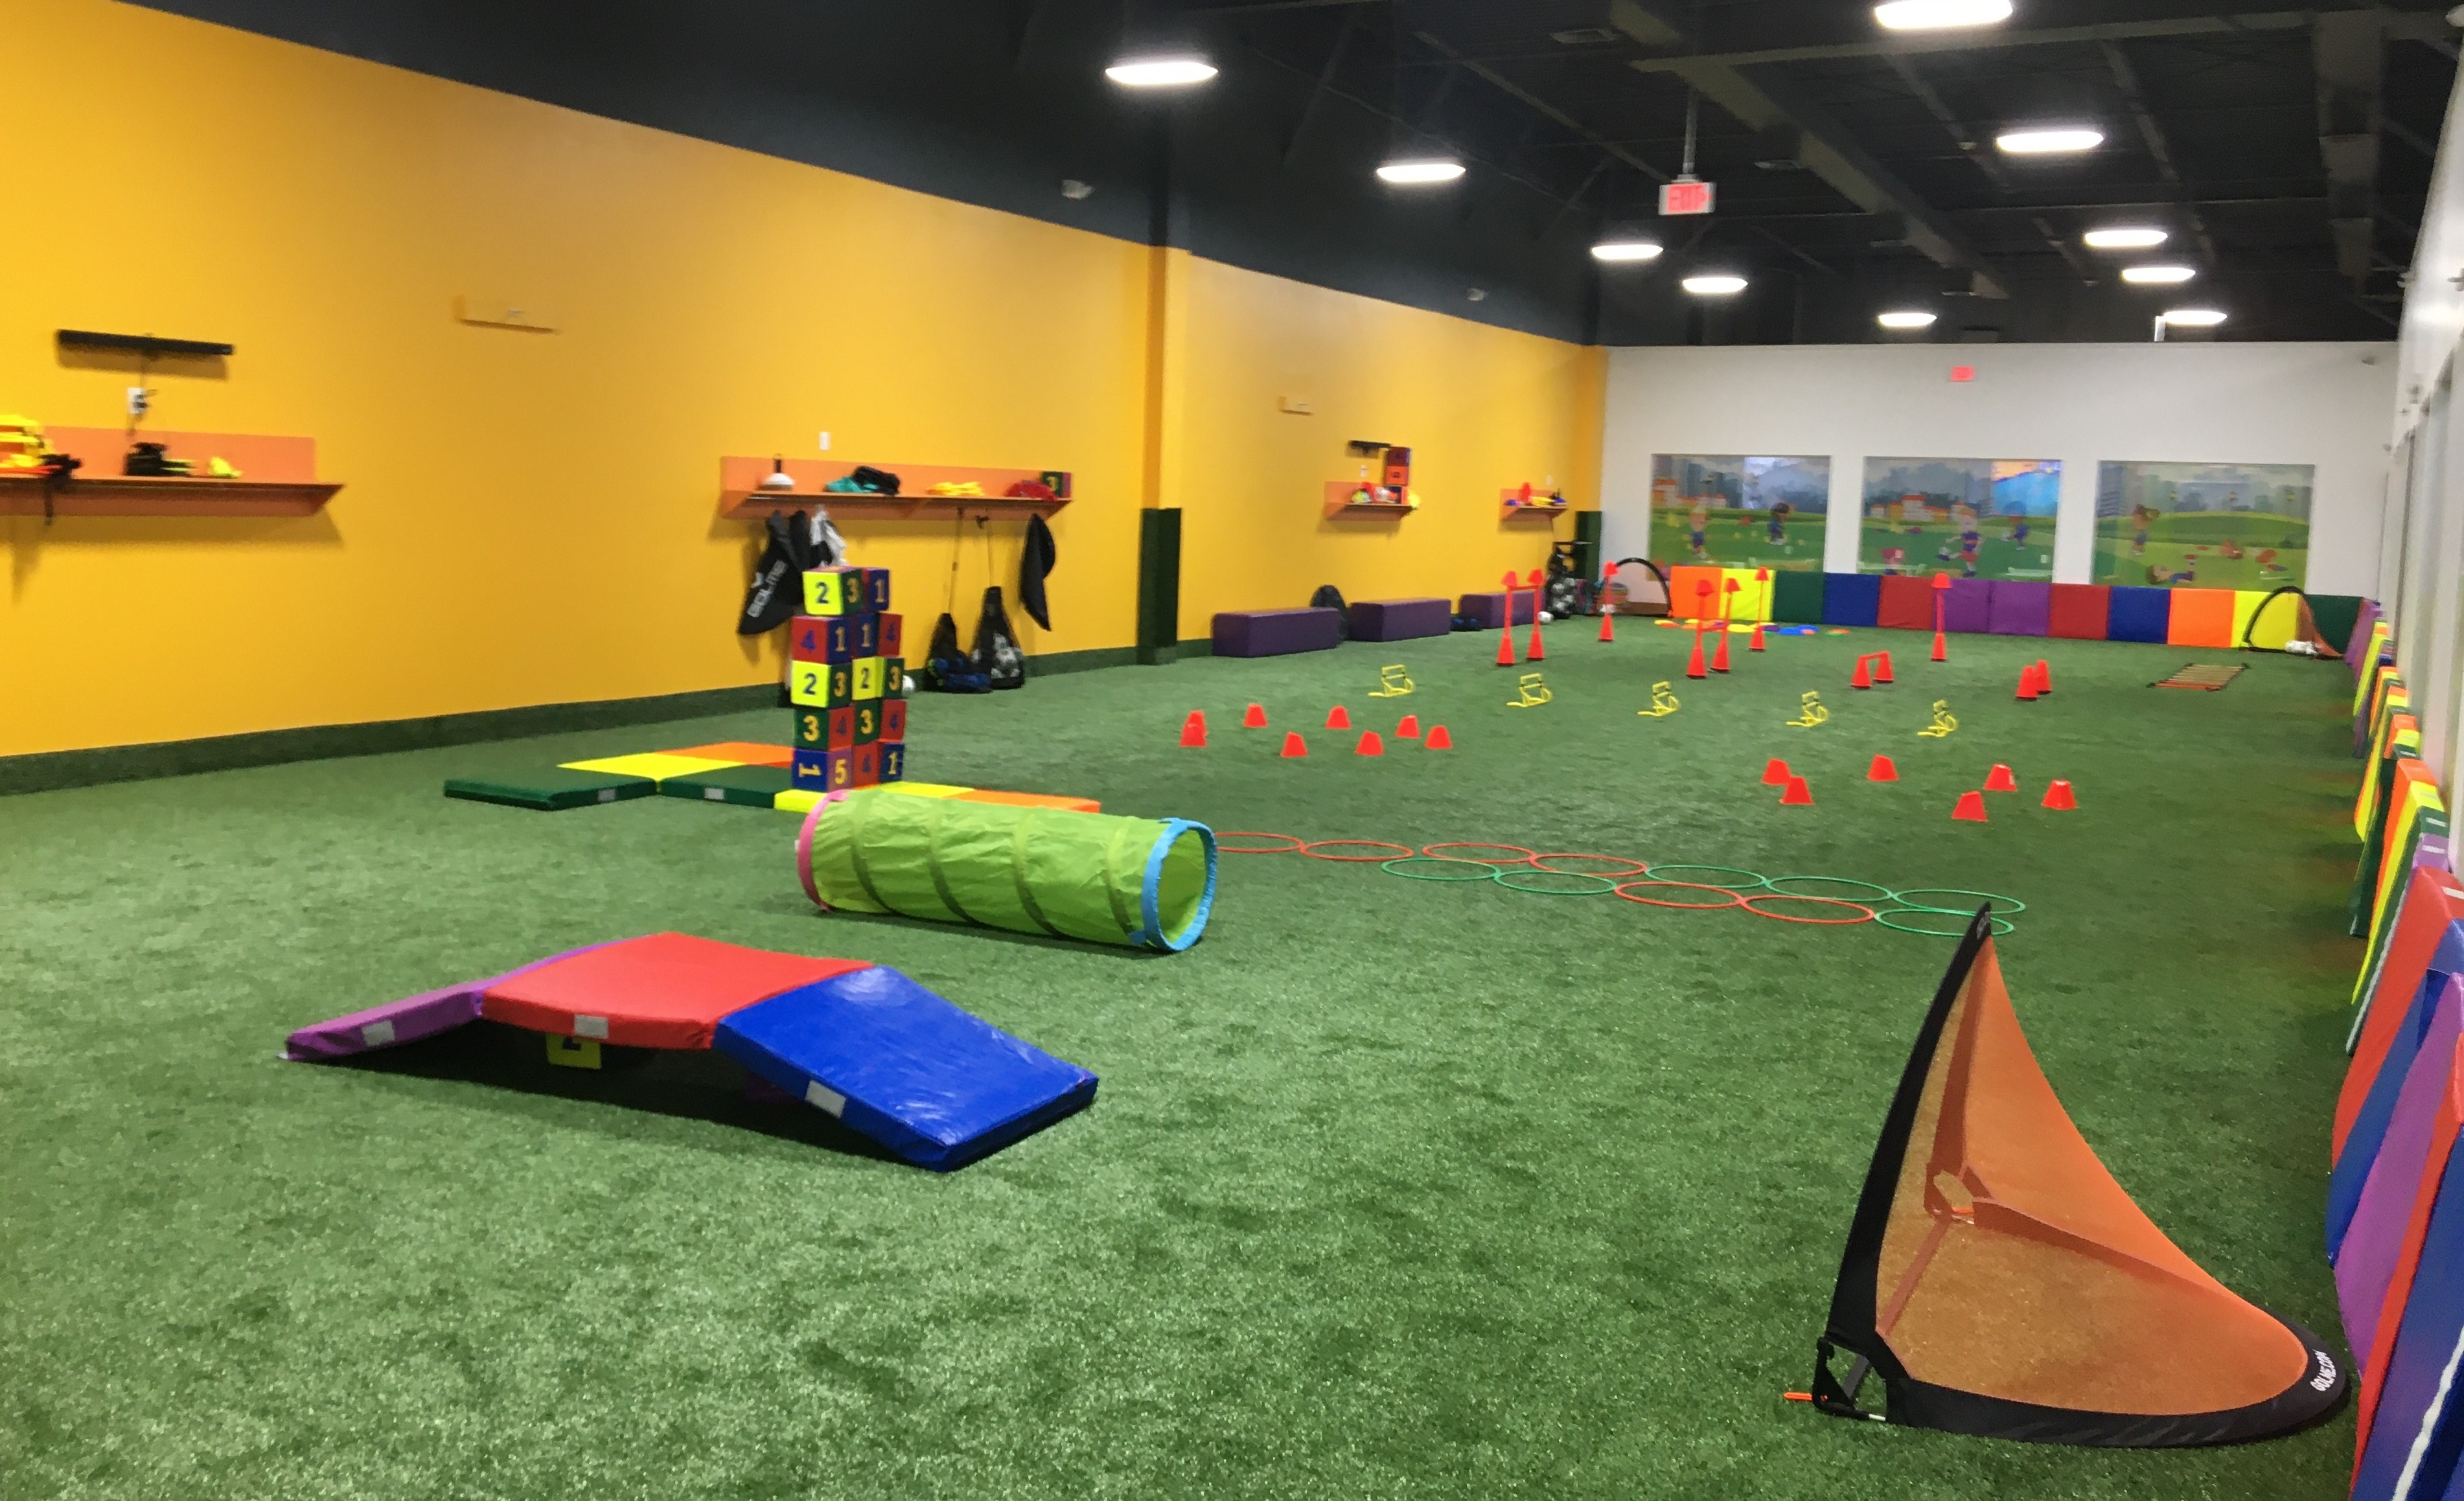 Footbik Early Years Soccer Center Opens at East Gate Square in Moorestown, NJ